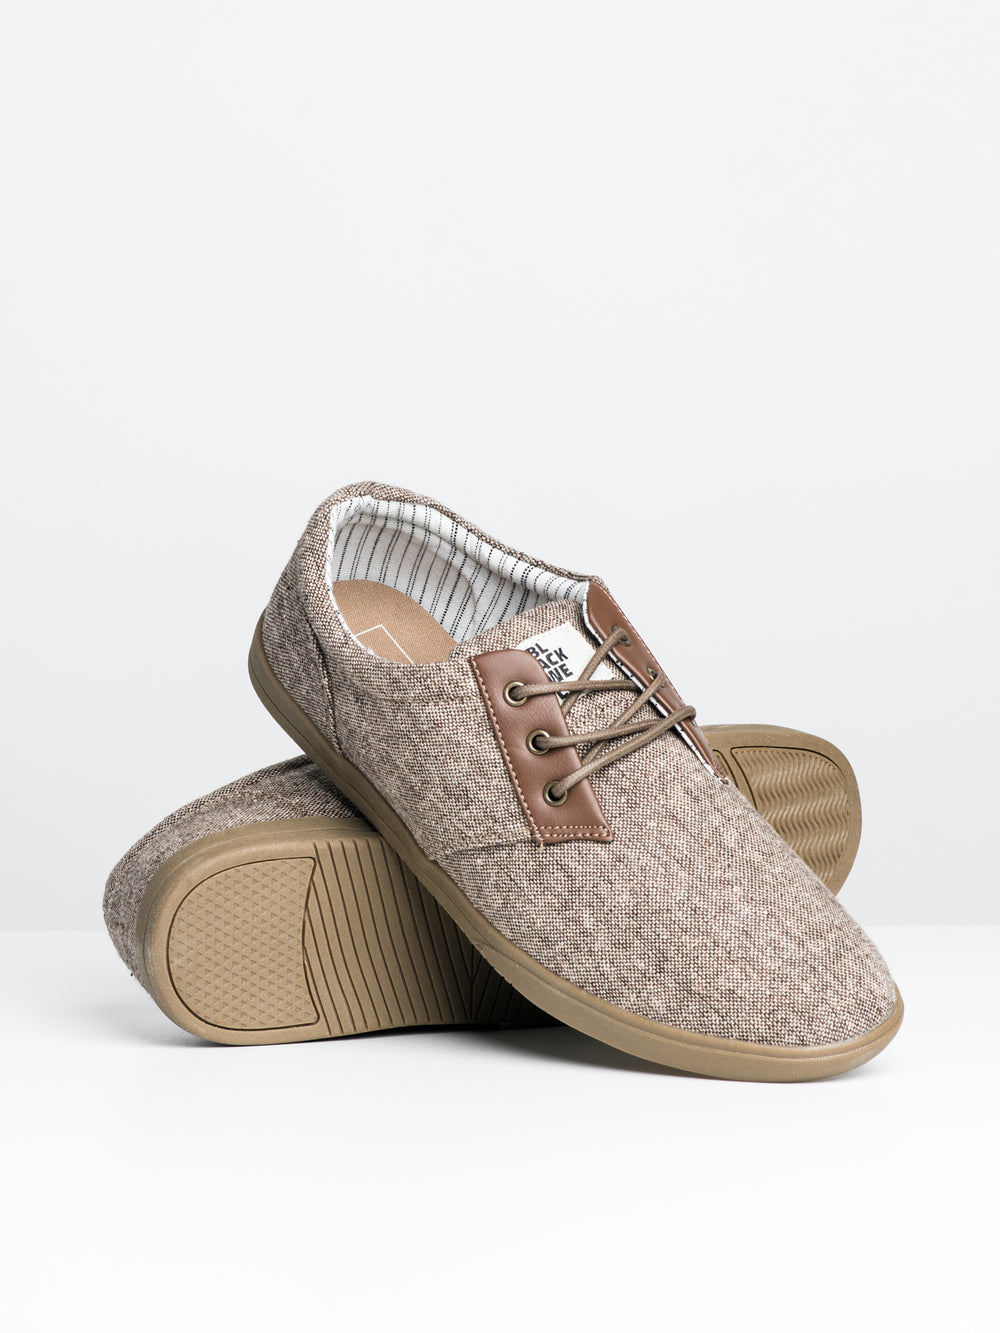 MENS RILEY - BROWN-D1